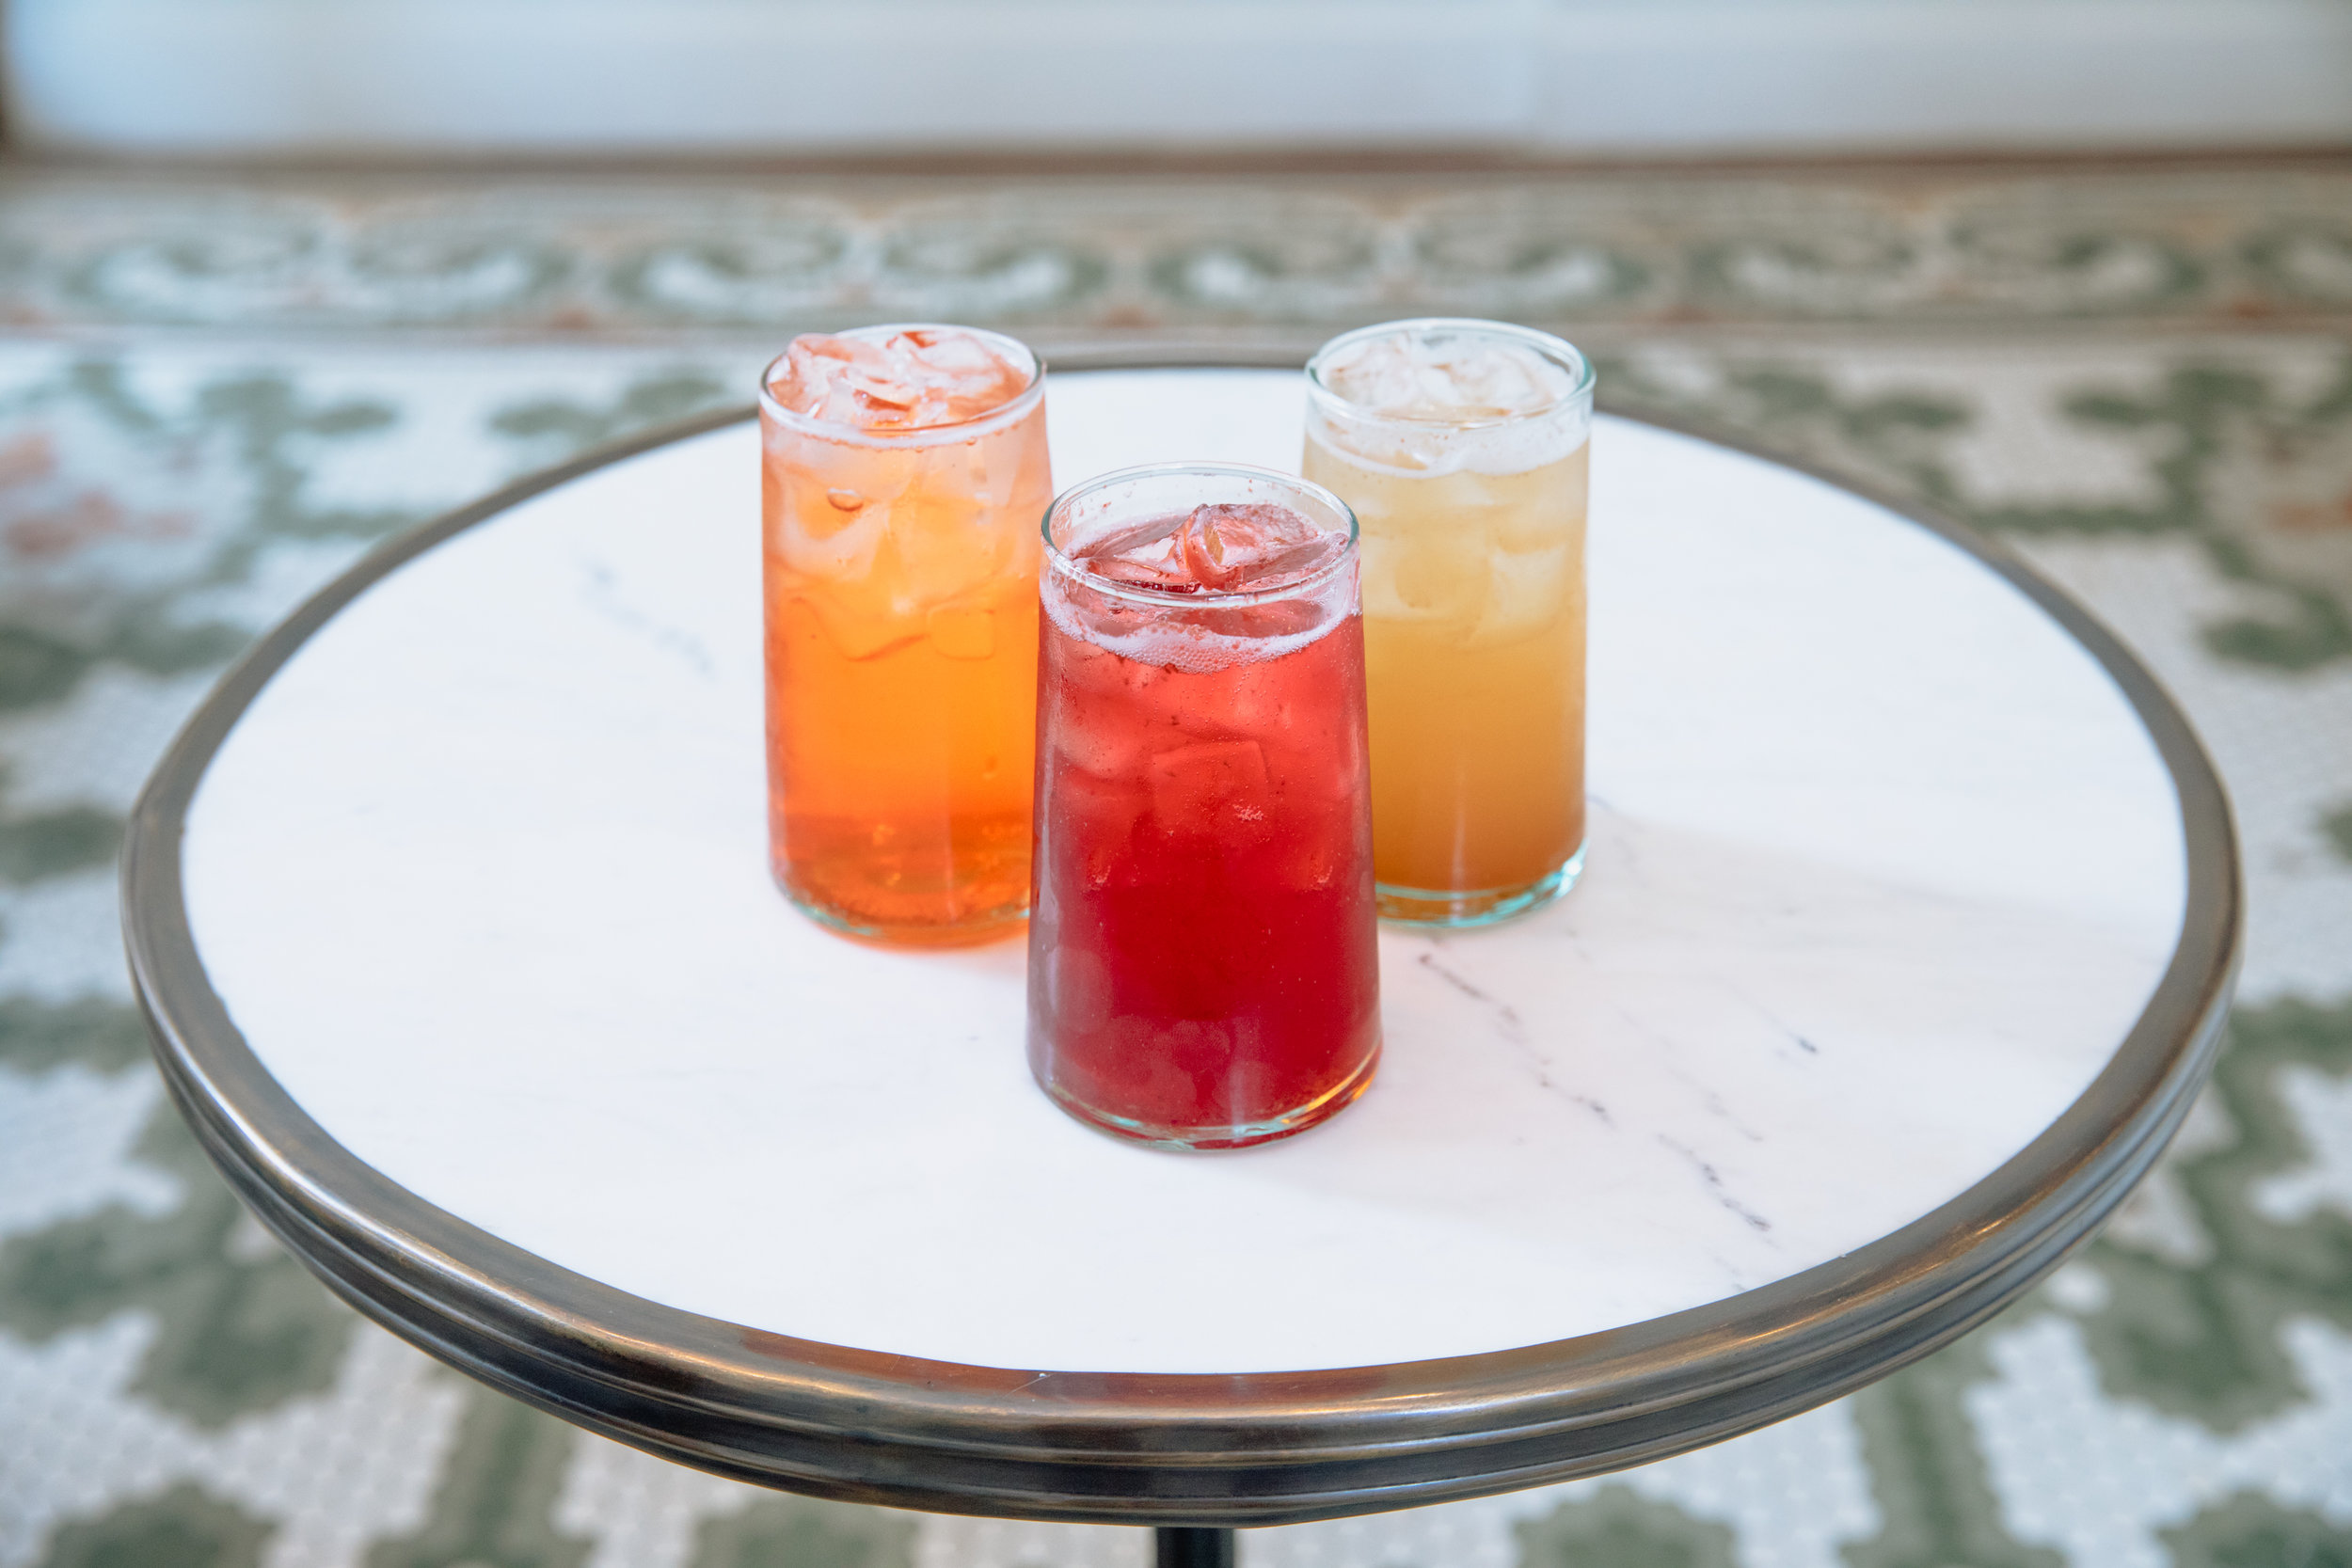 If you stop by MIKC during the summer, you have to try one of the seasonal shrubs!